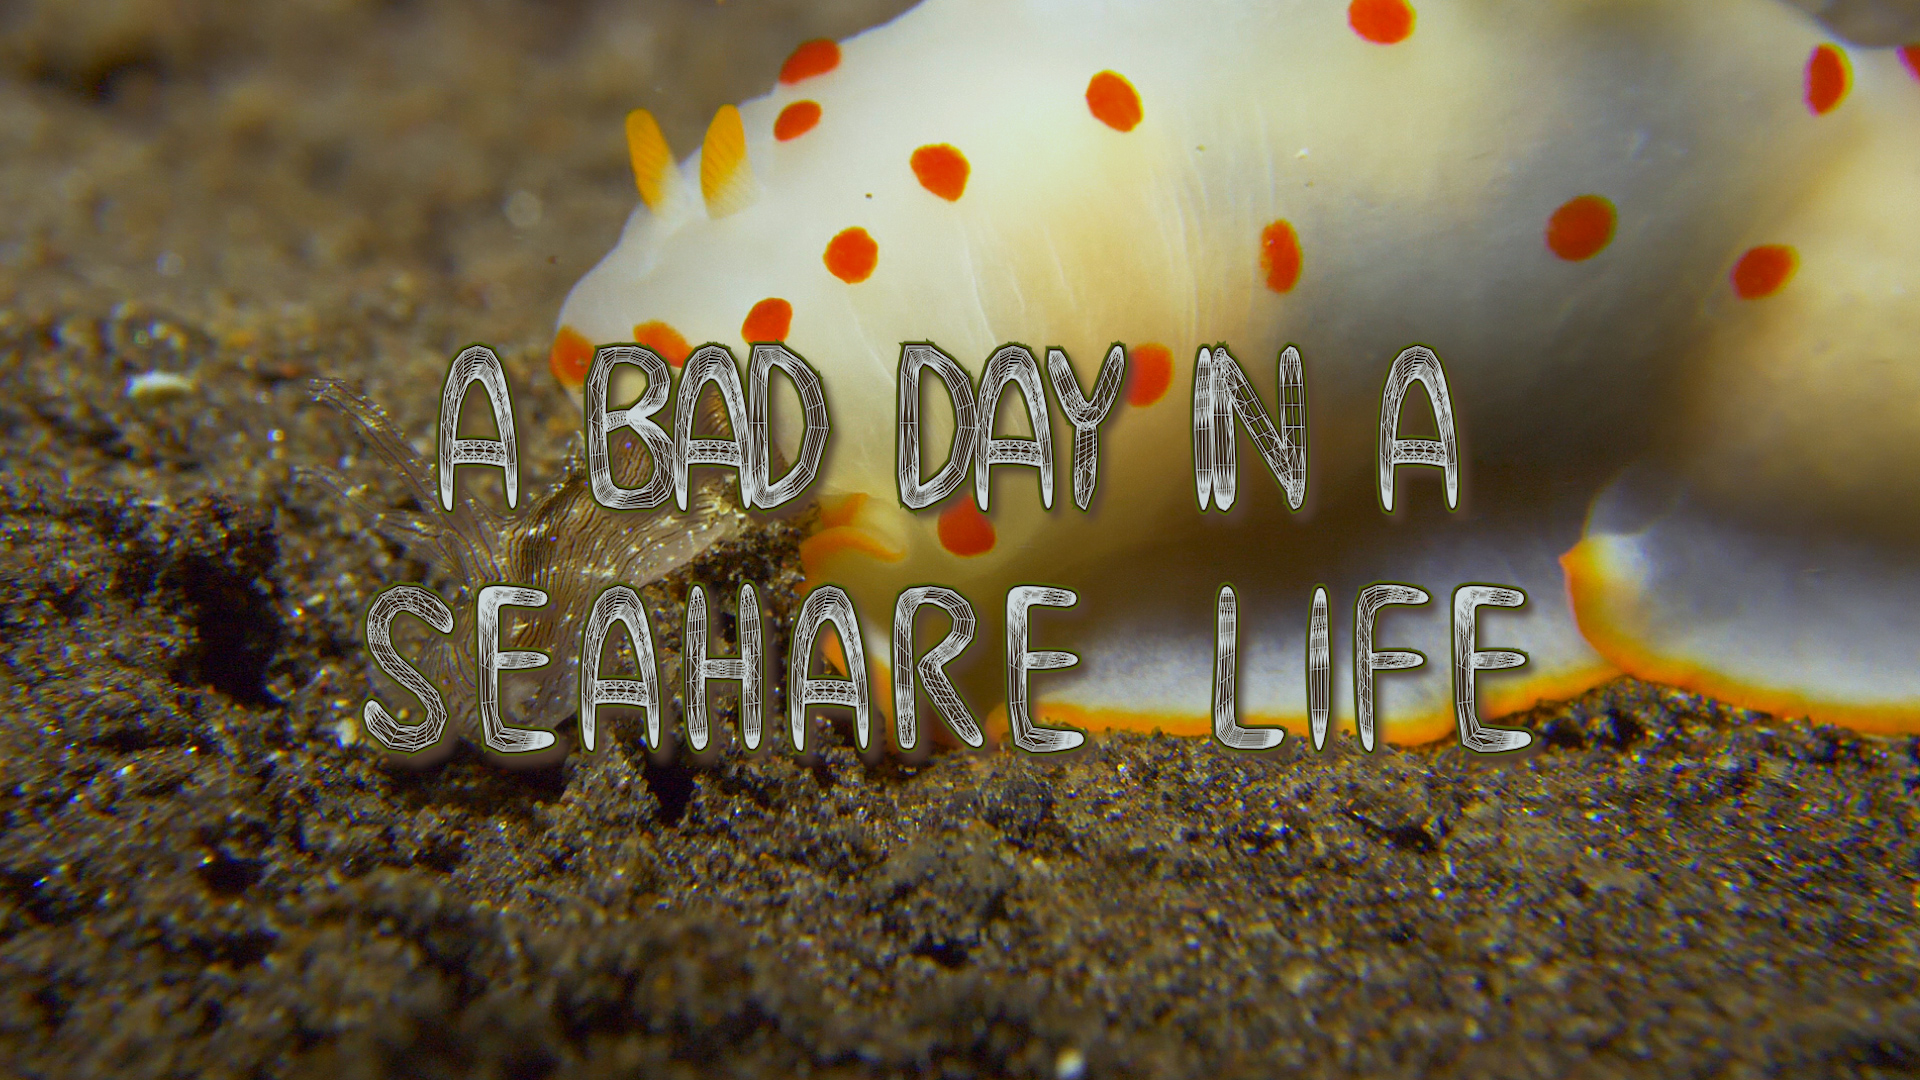 A day in a Sea hare life